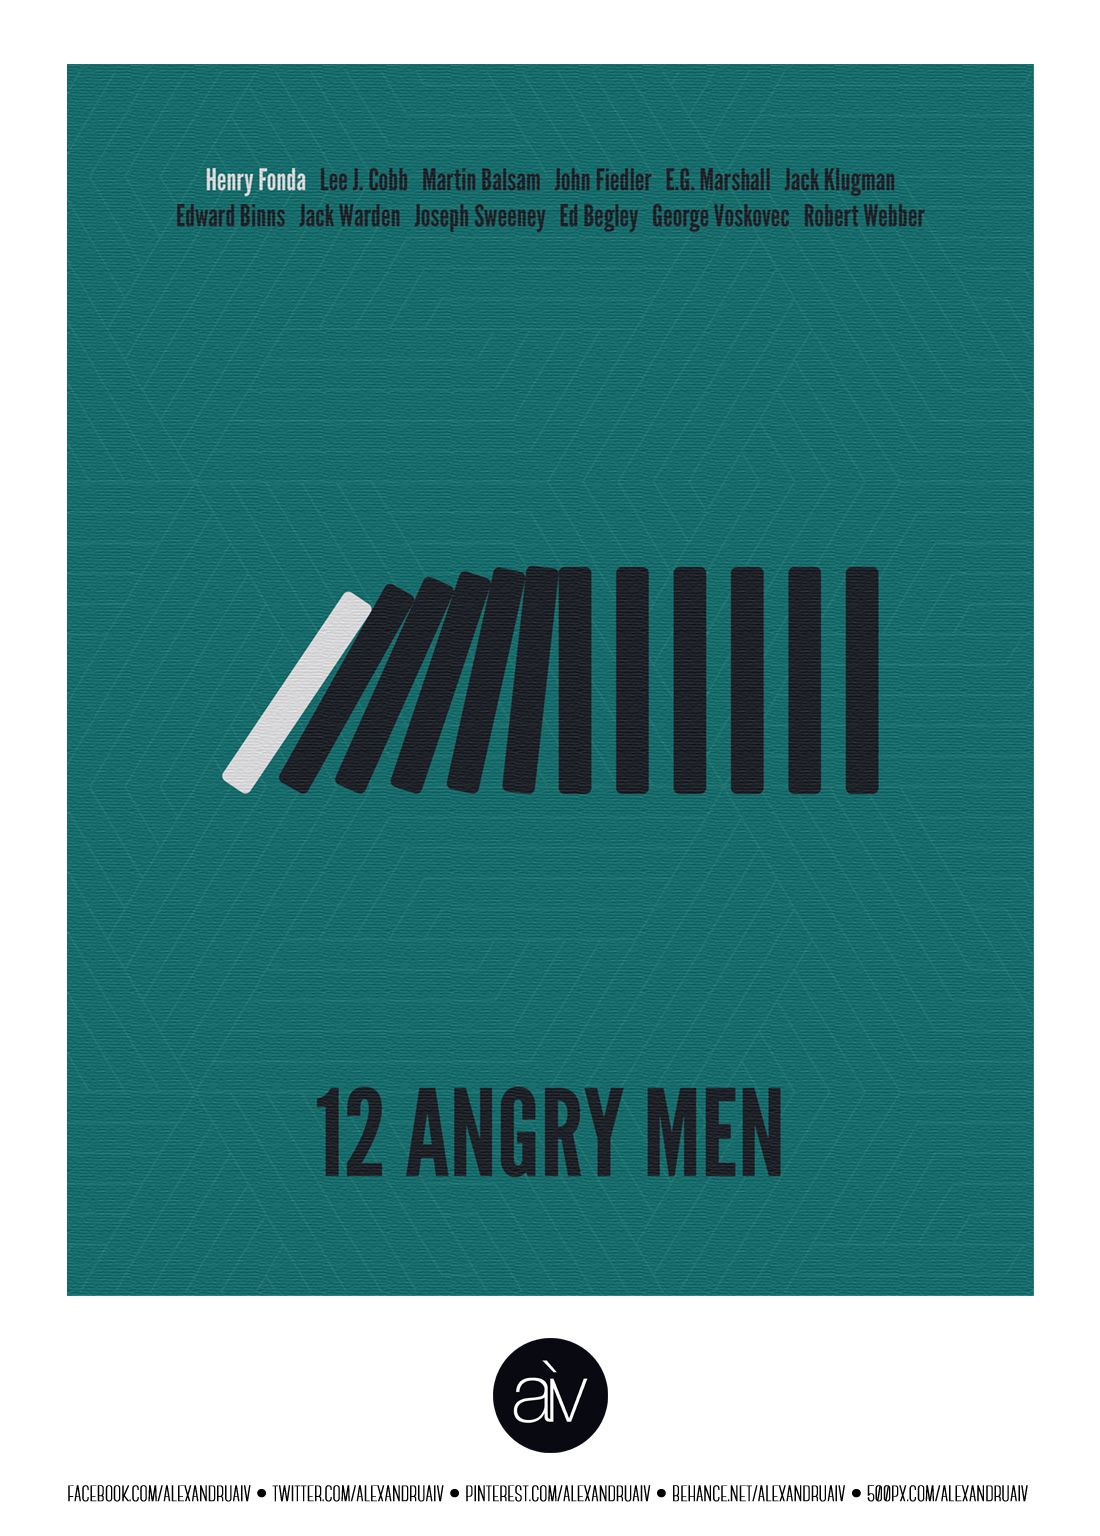 12 Angry Men 1957 Posters In 2019 Movie Posters Film